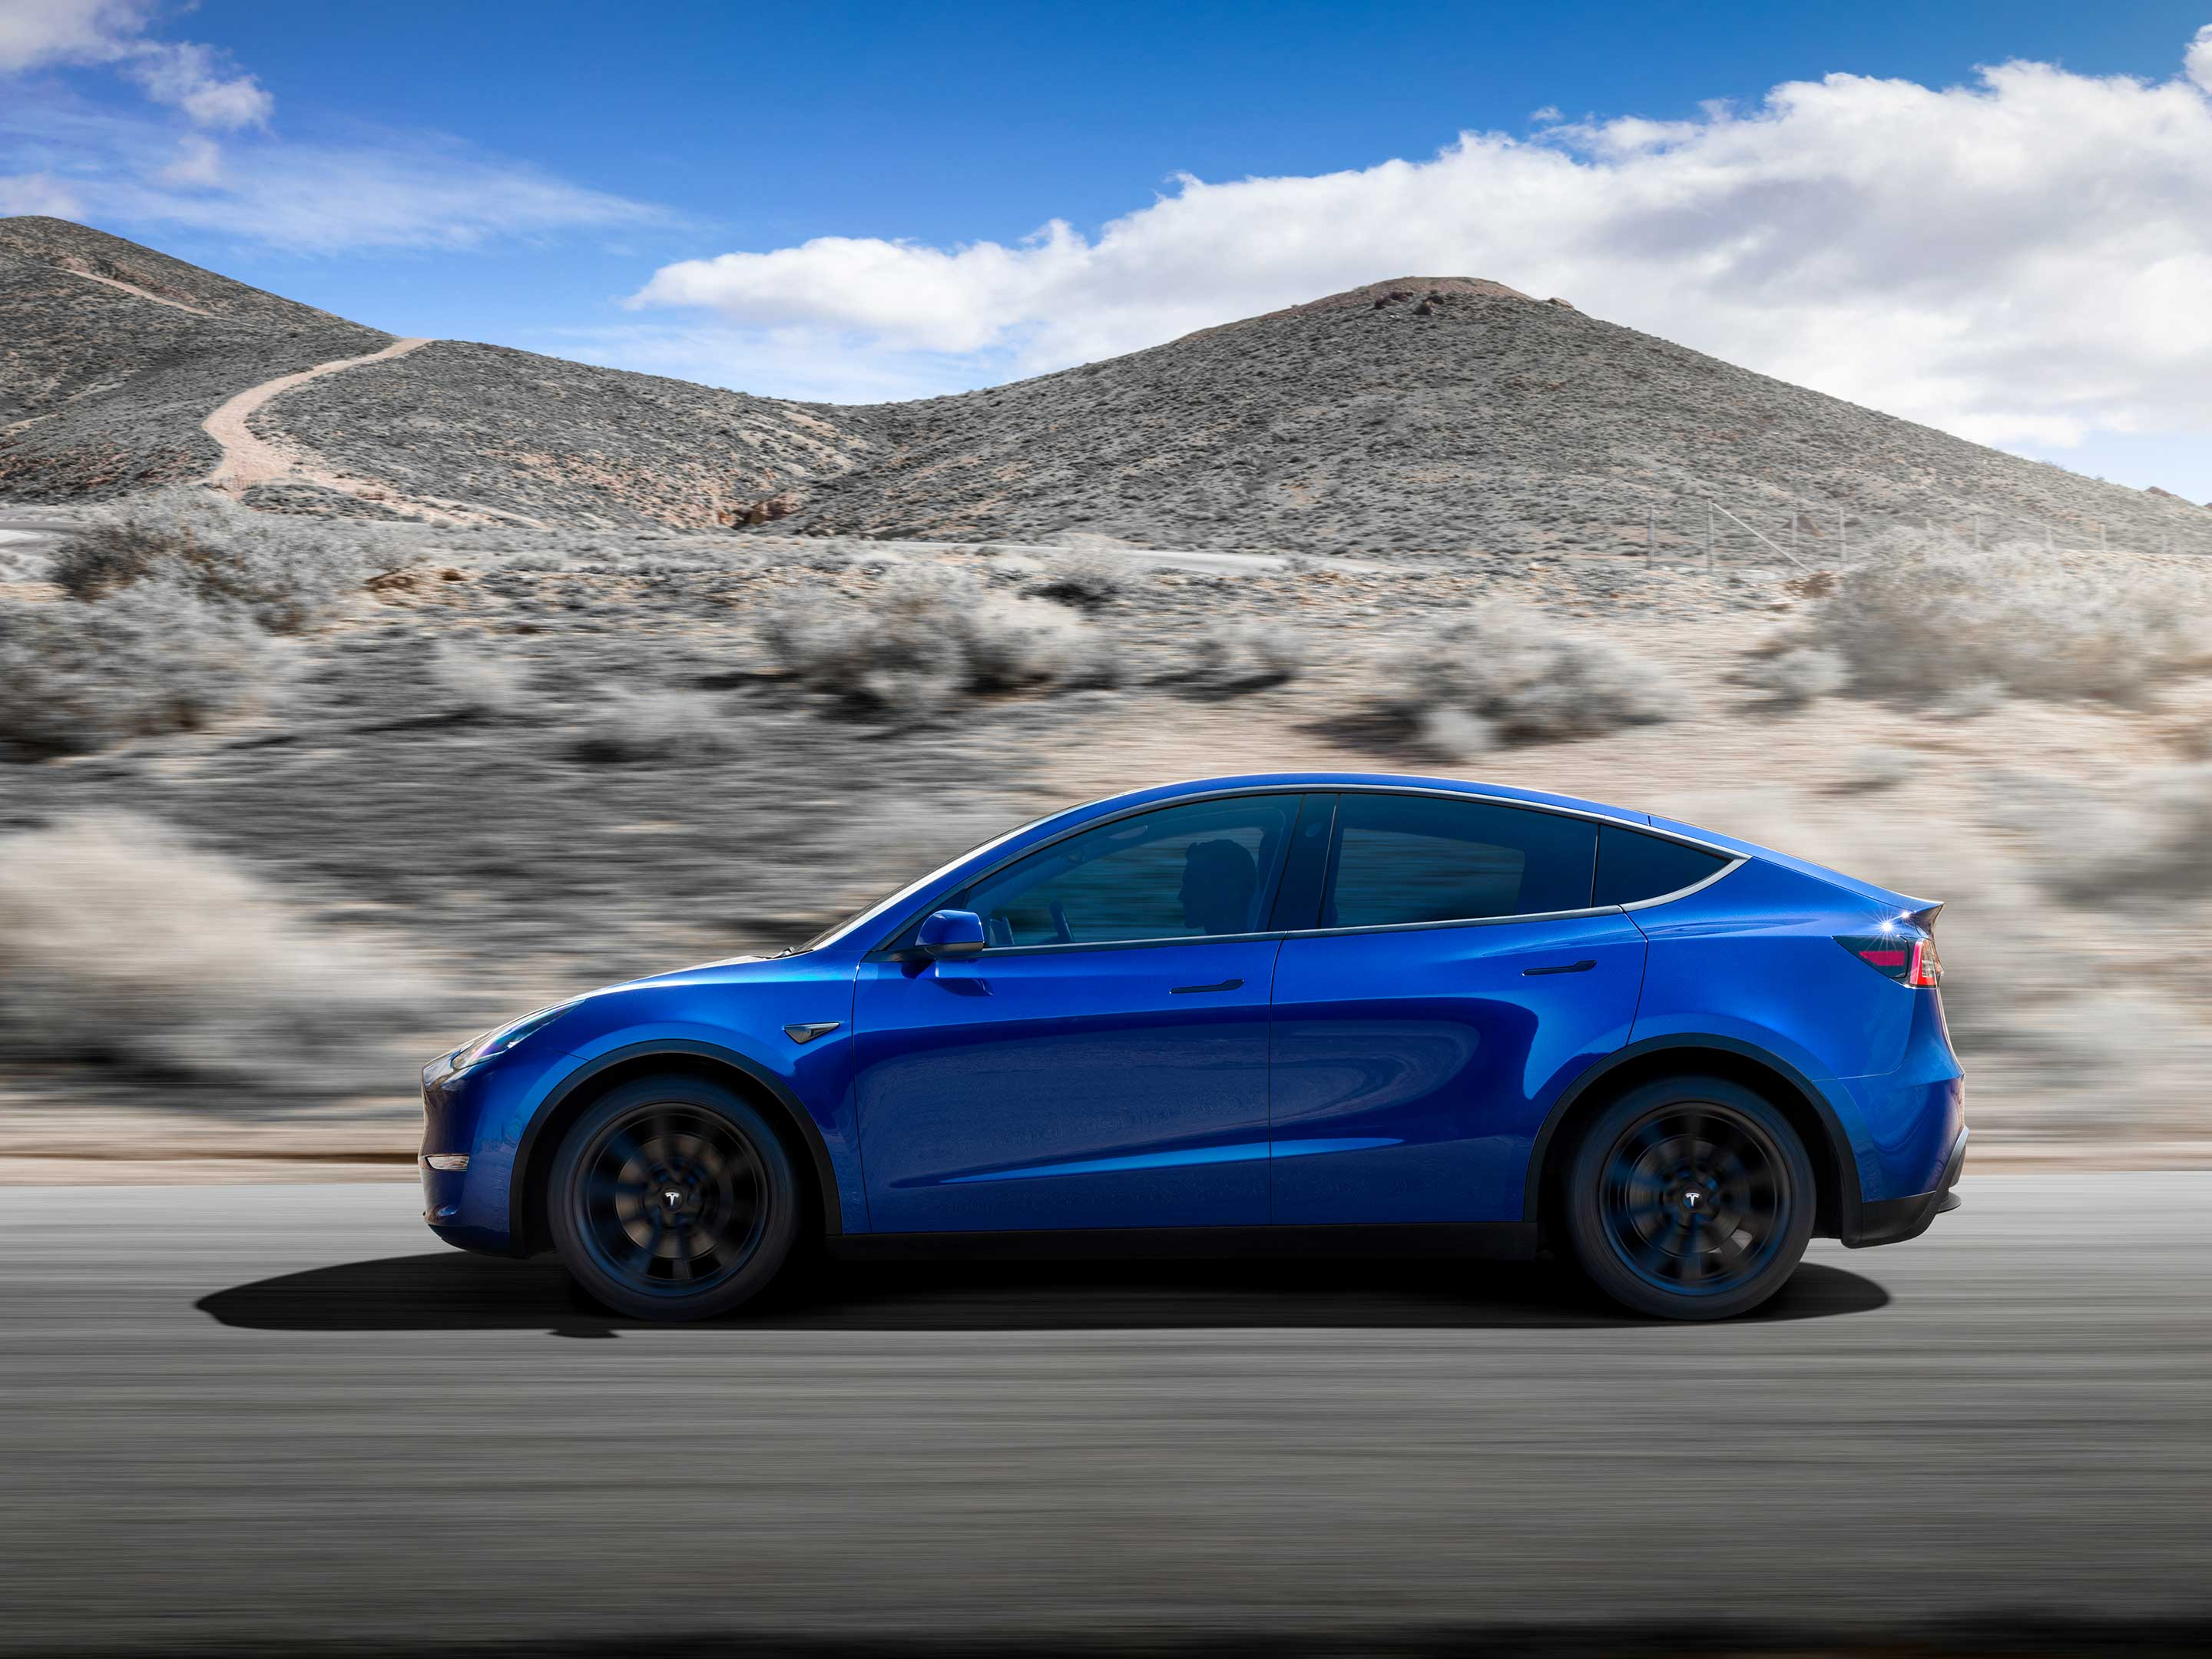 Tesla's Model Y is here and costs $64,000 CAD